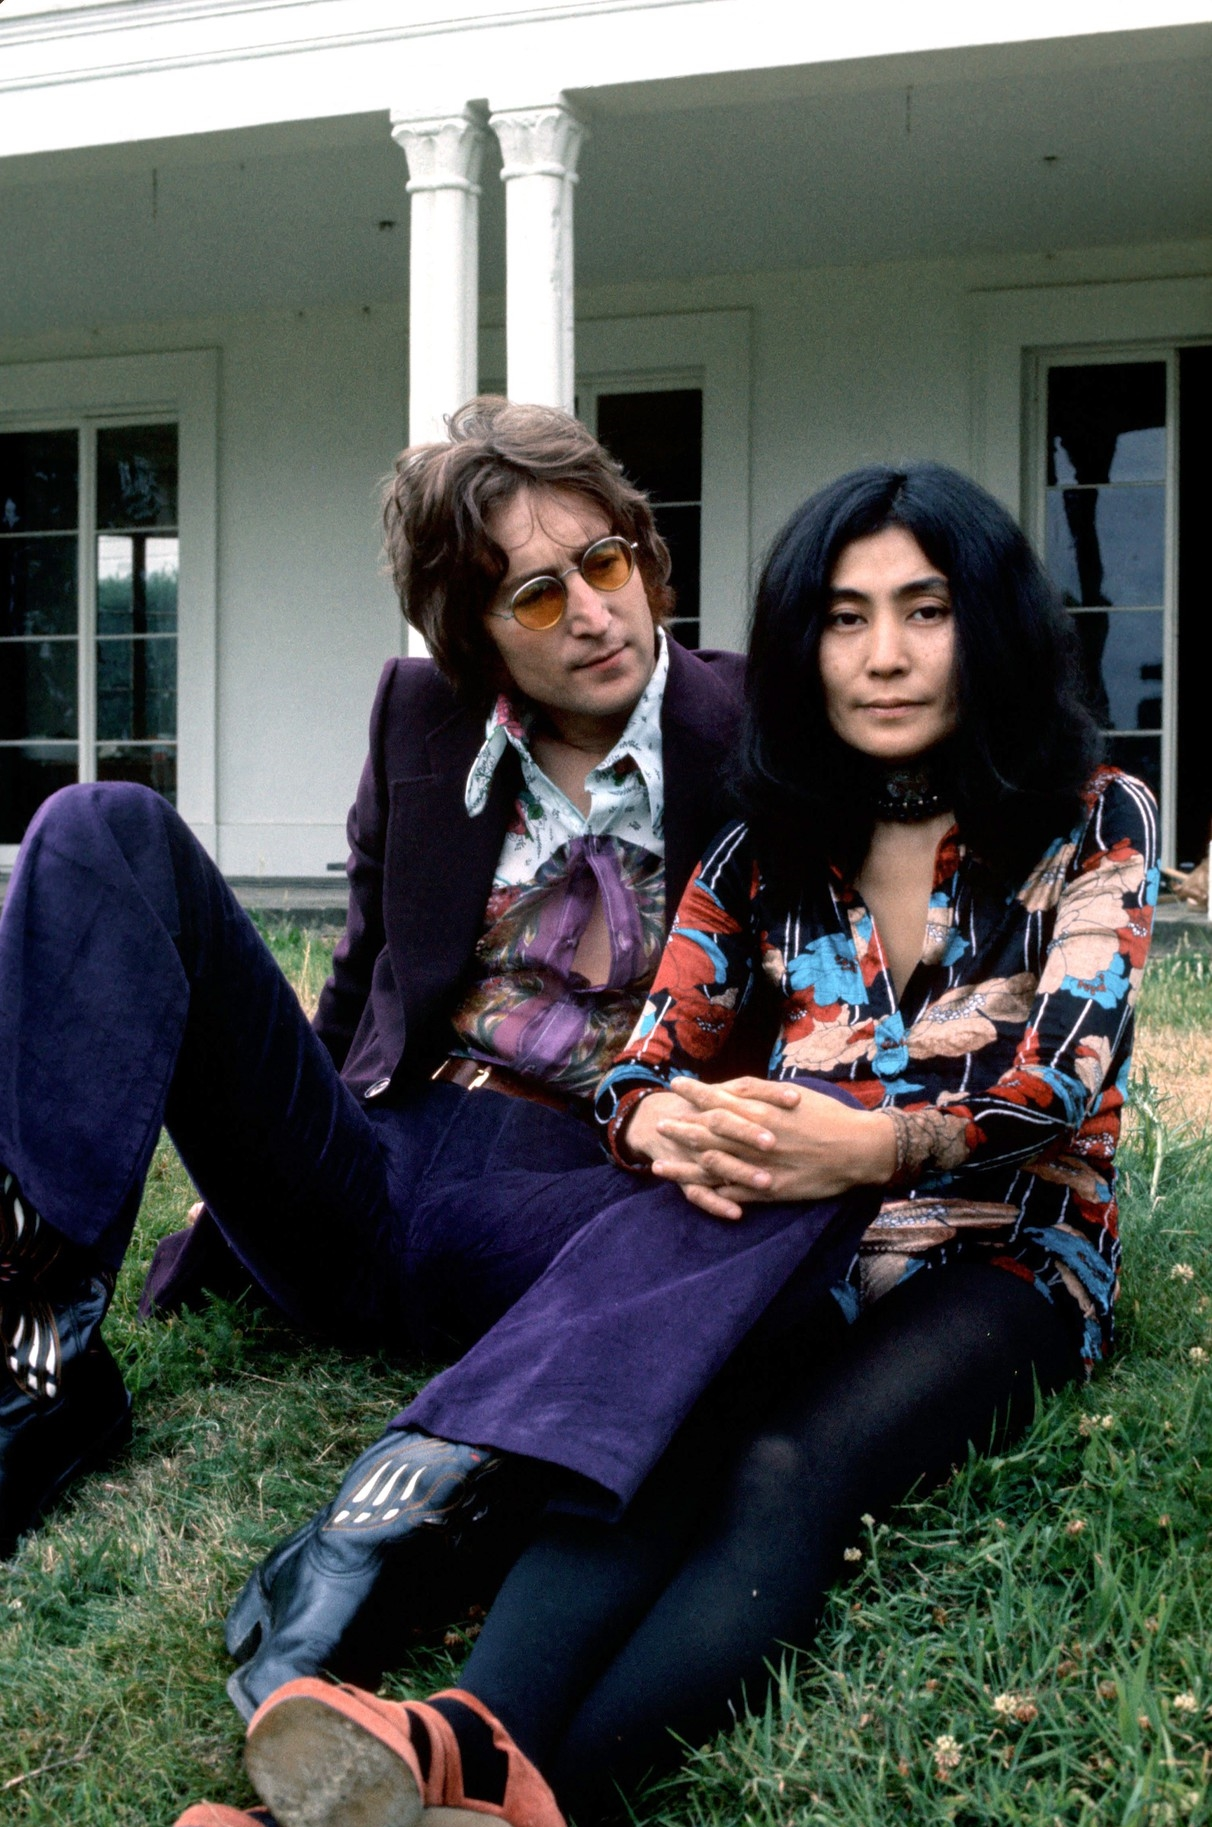 yoko and john relationship